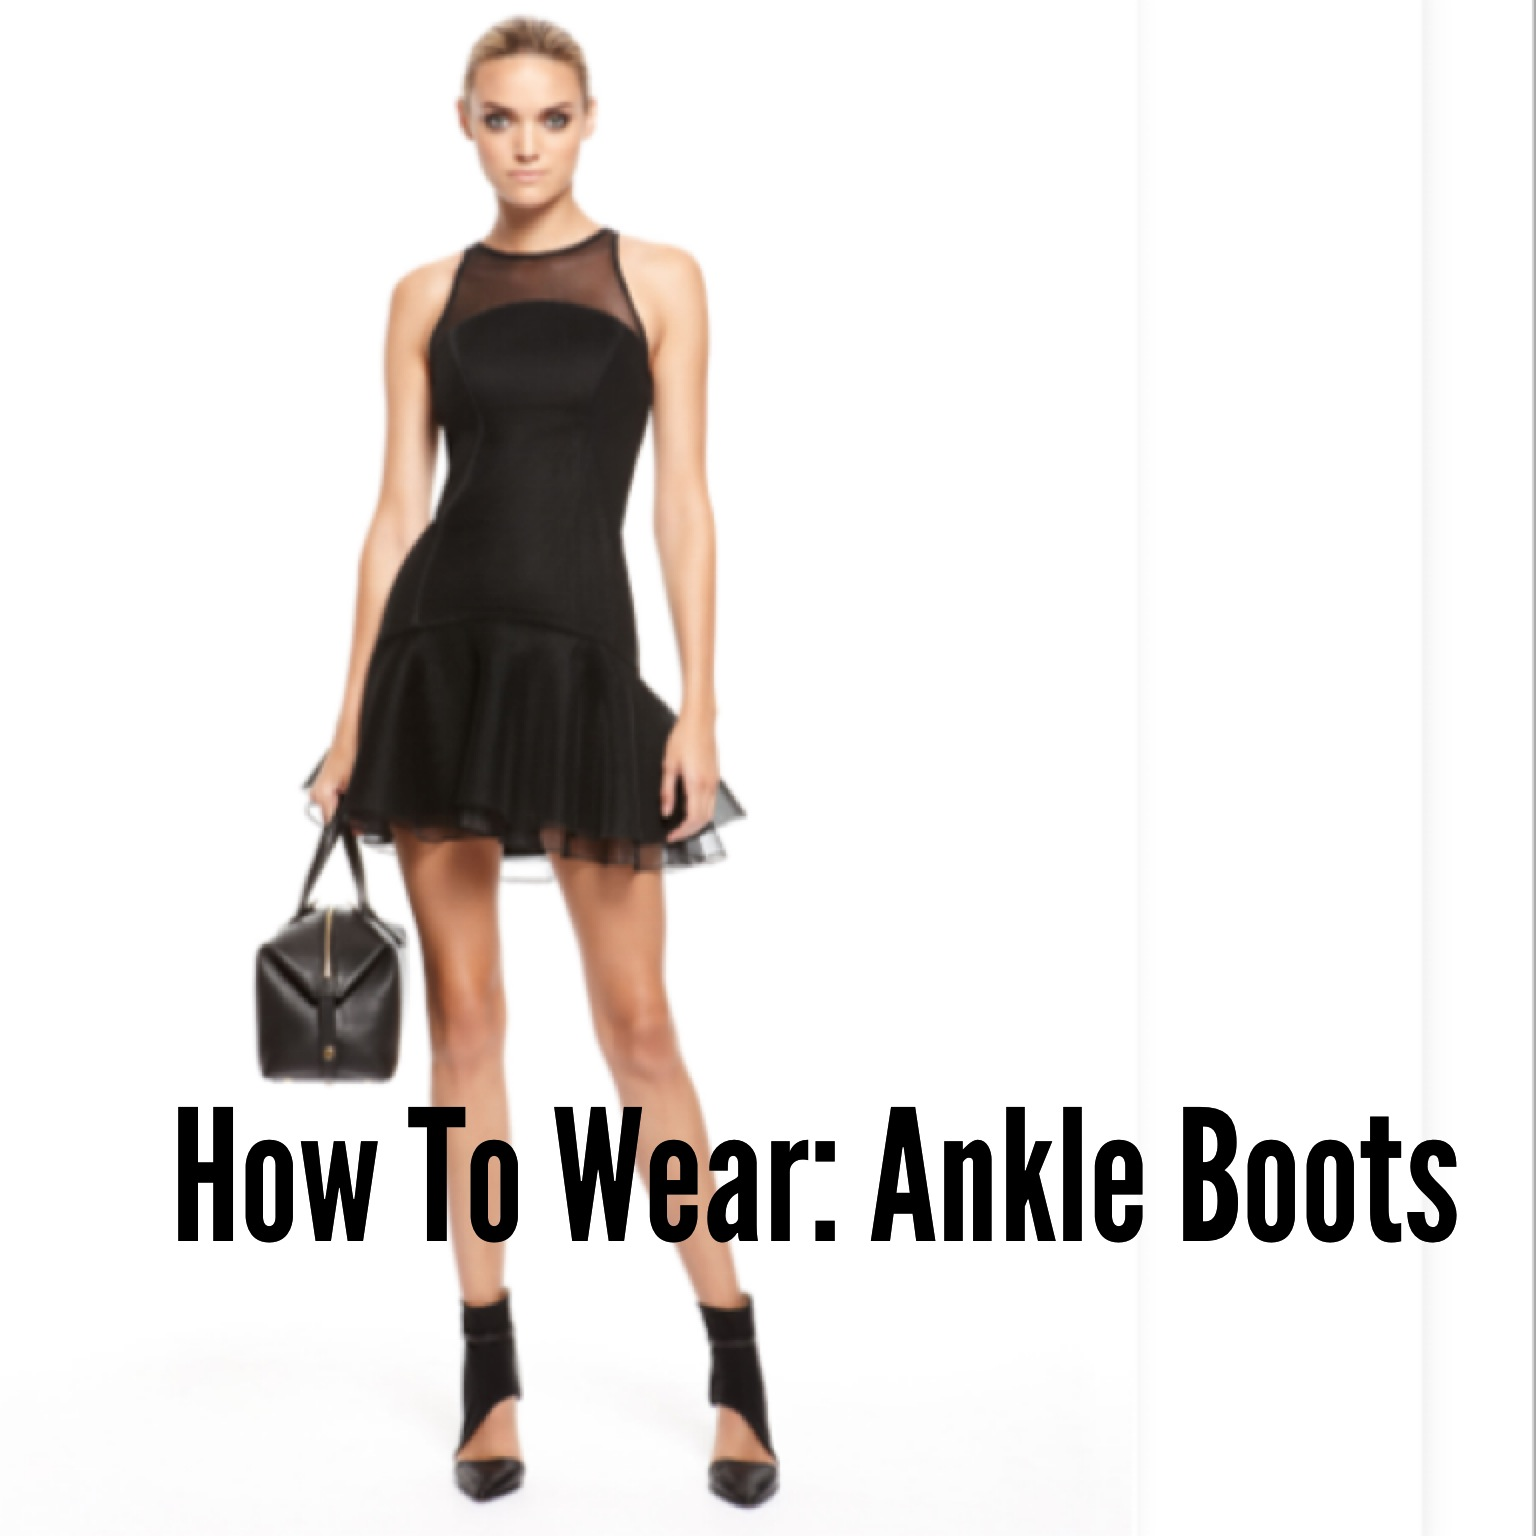 How To Wear: Ankle Boots